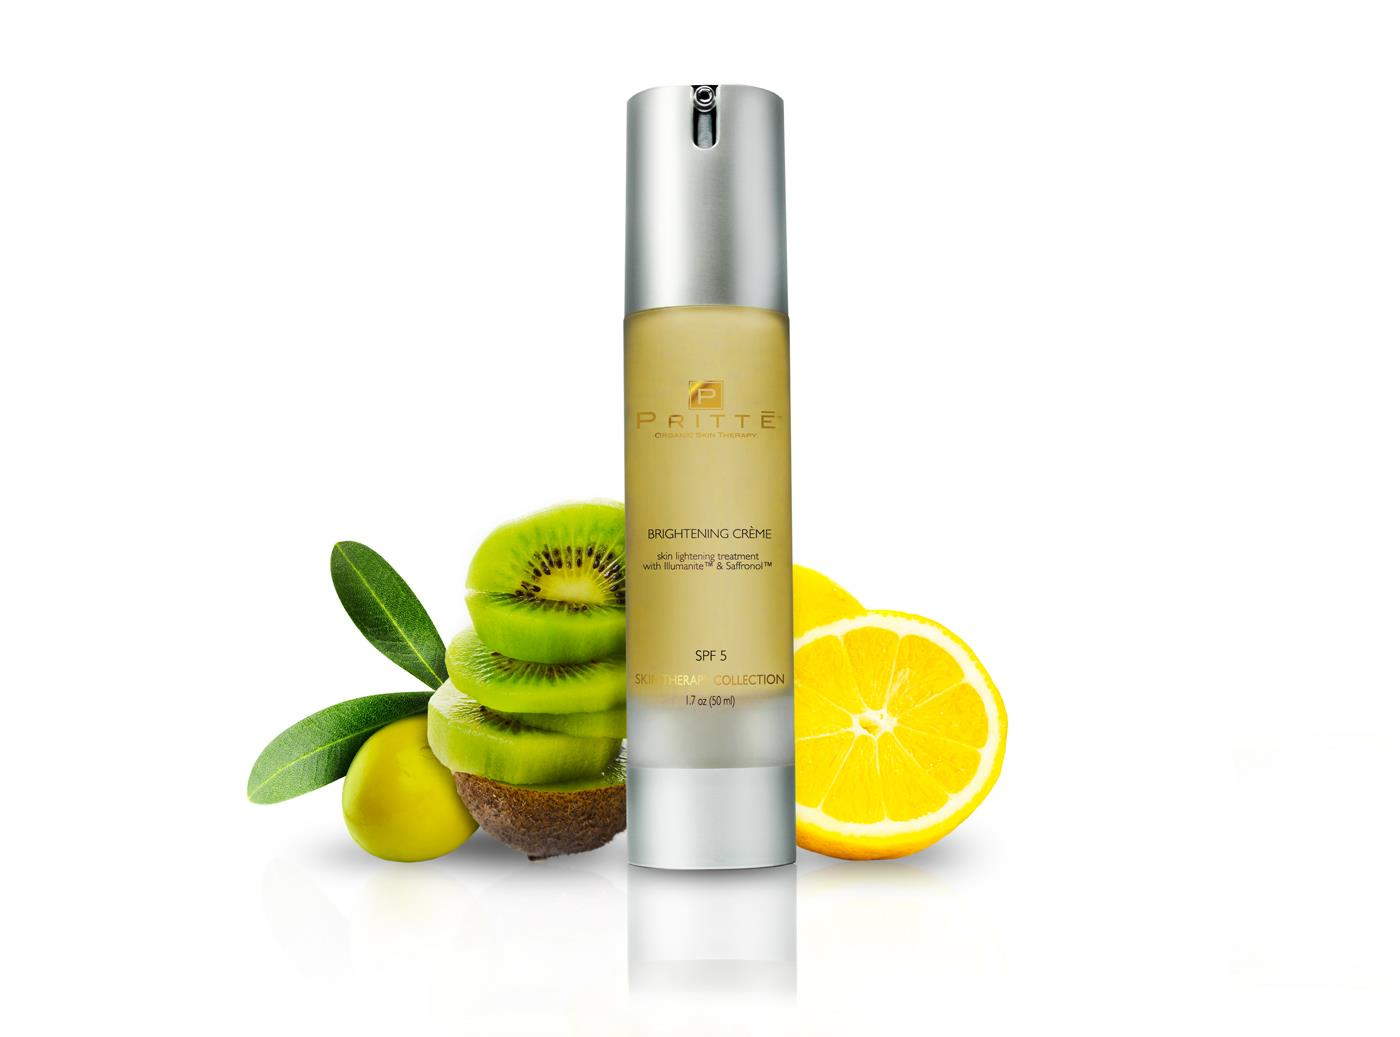 Pritte Brightening Creme bottle